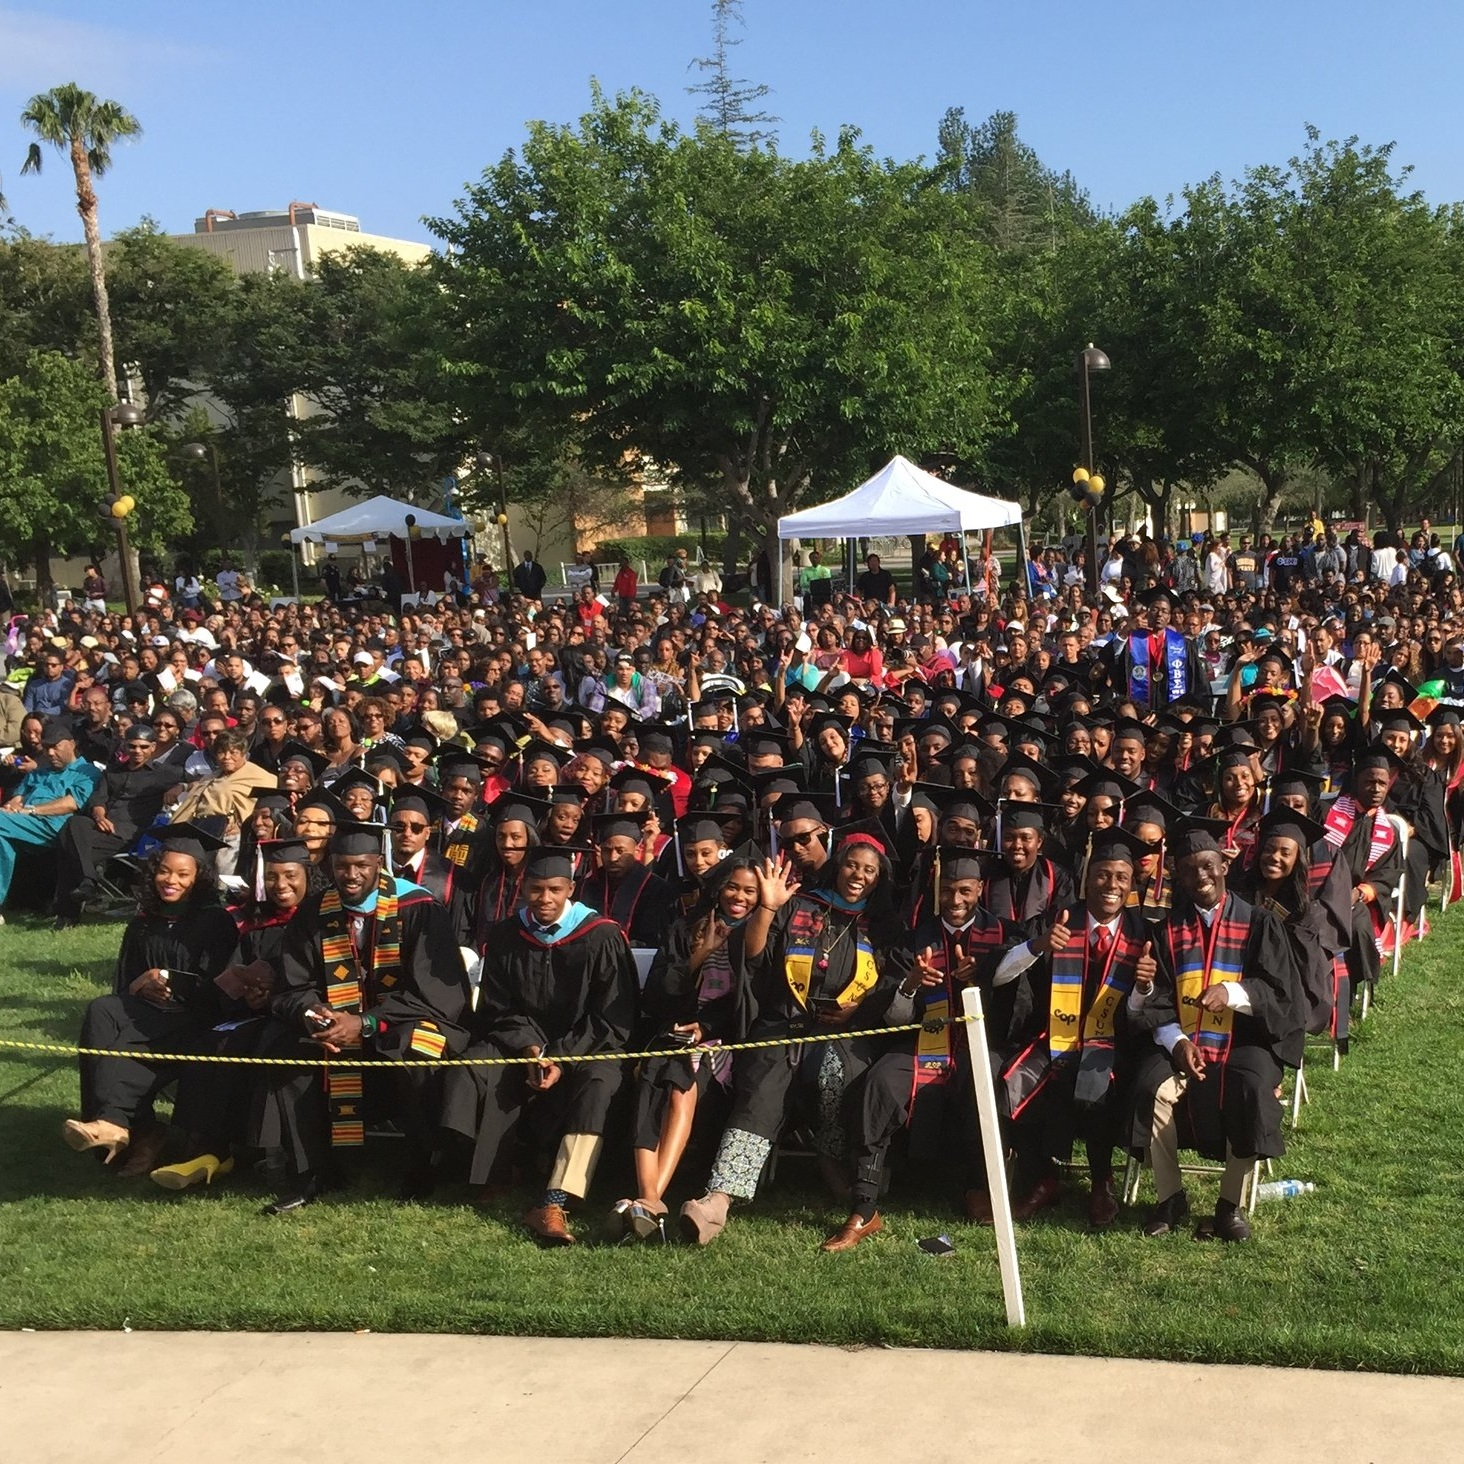 California - Of everything that I've done, delivering the commencement address CSUN - California State University Northridge - and inspiring the graduates, their parents, family, faculty and staff ranks pretty high up there!